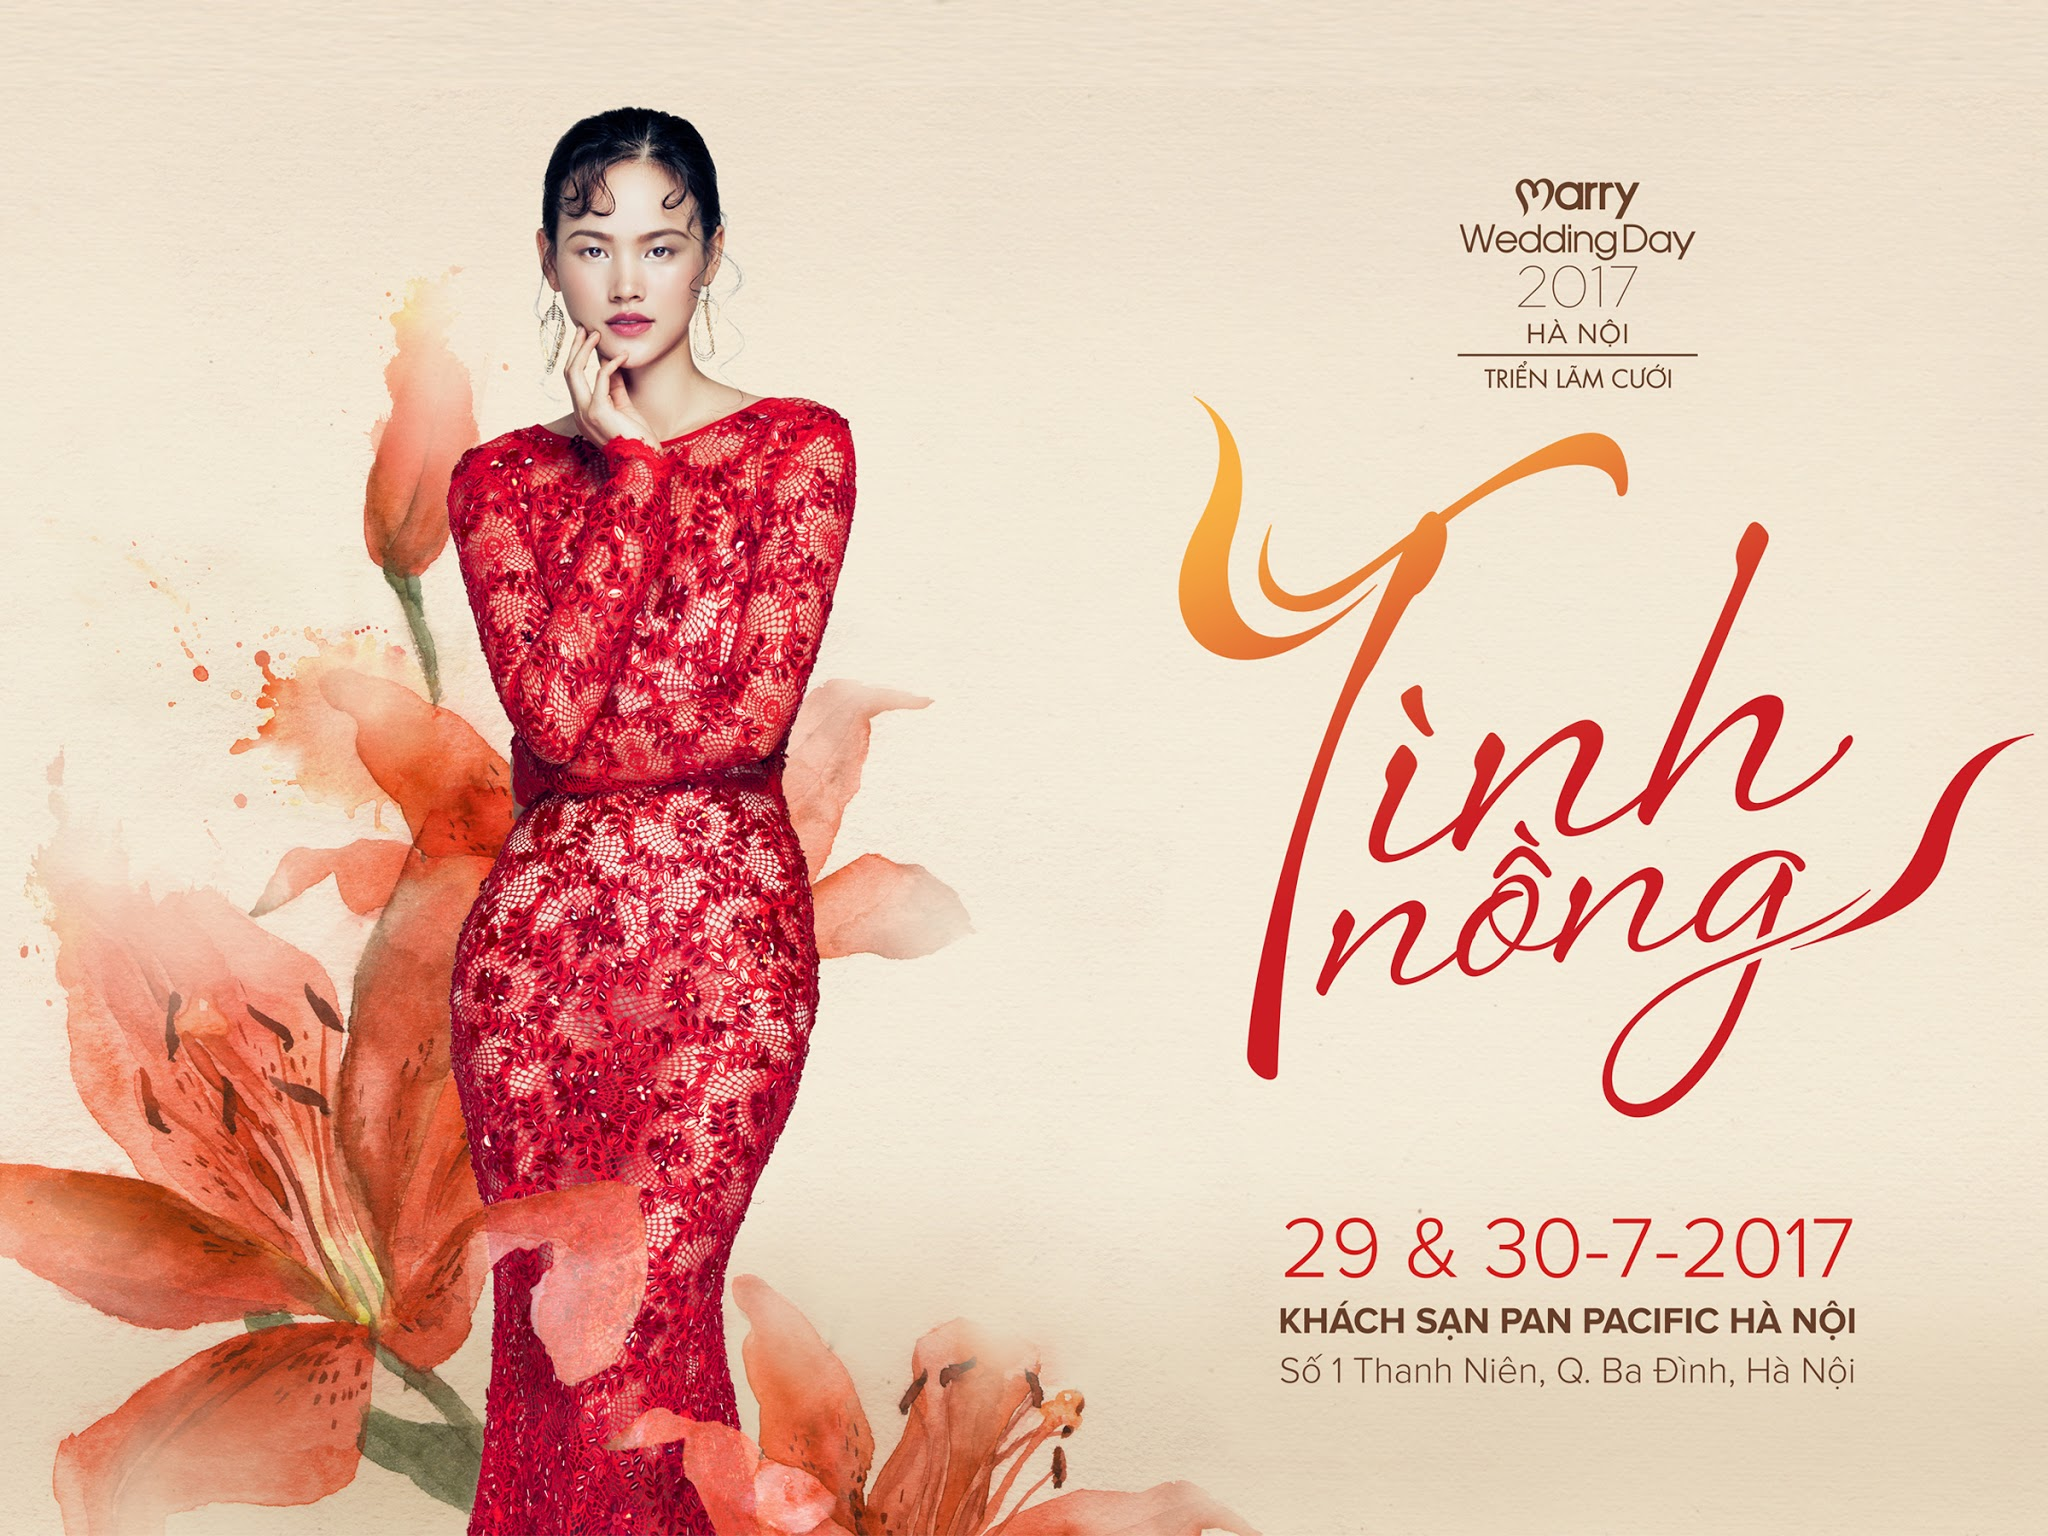 Marry Wedding Day hà nội 2017